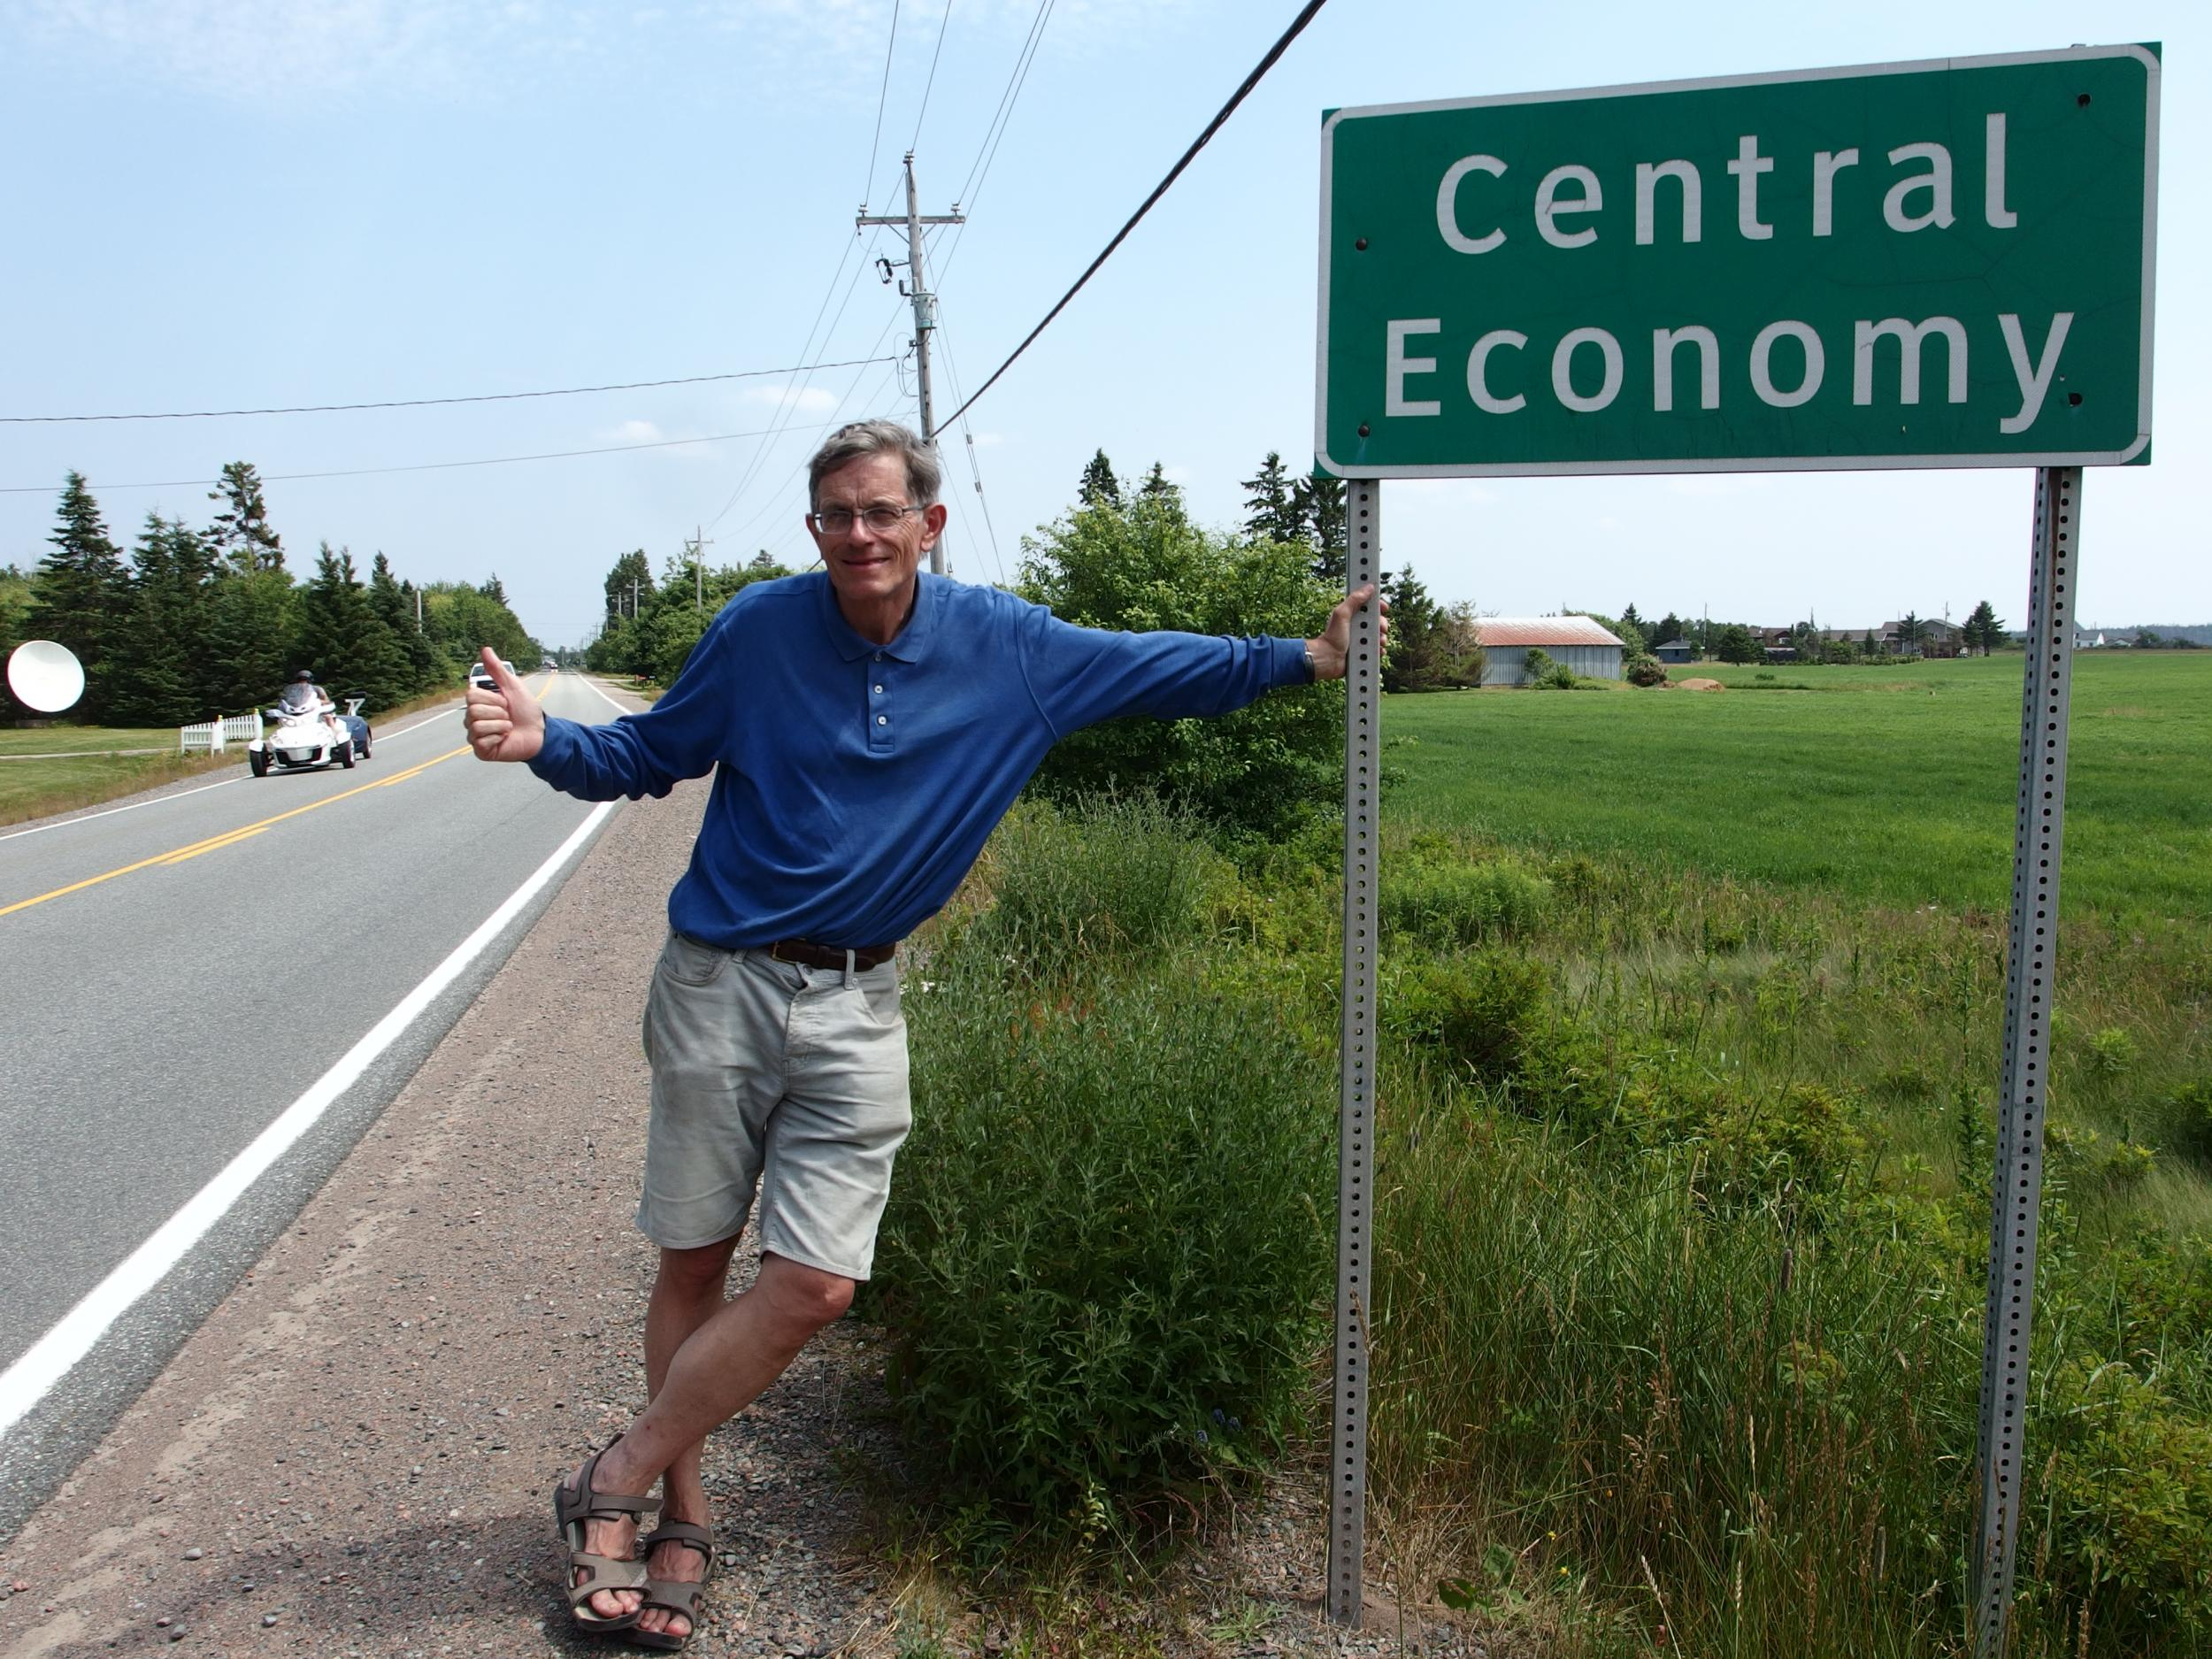 centraleconomyhitching-jpg.47503_How Hitchhiking Changed in 40 Years_Hitchhiking_Squat the Planet_9:53 PM